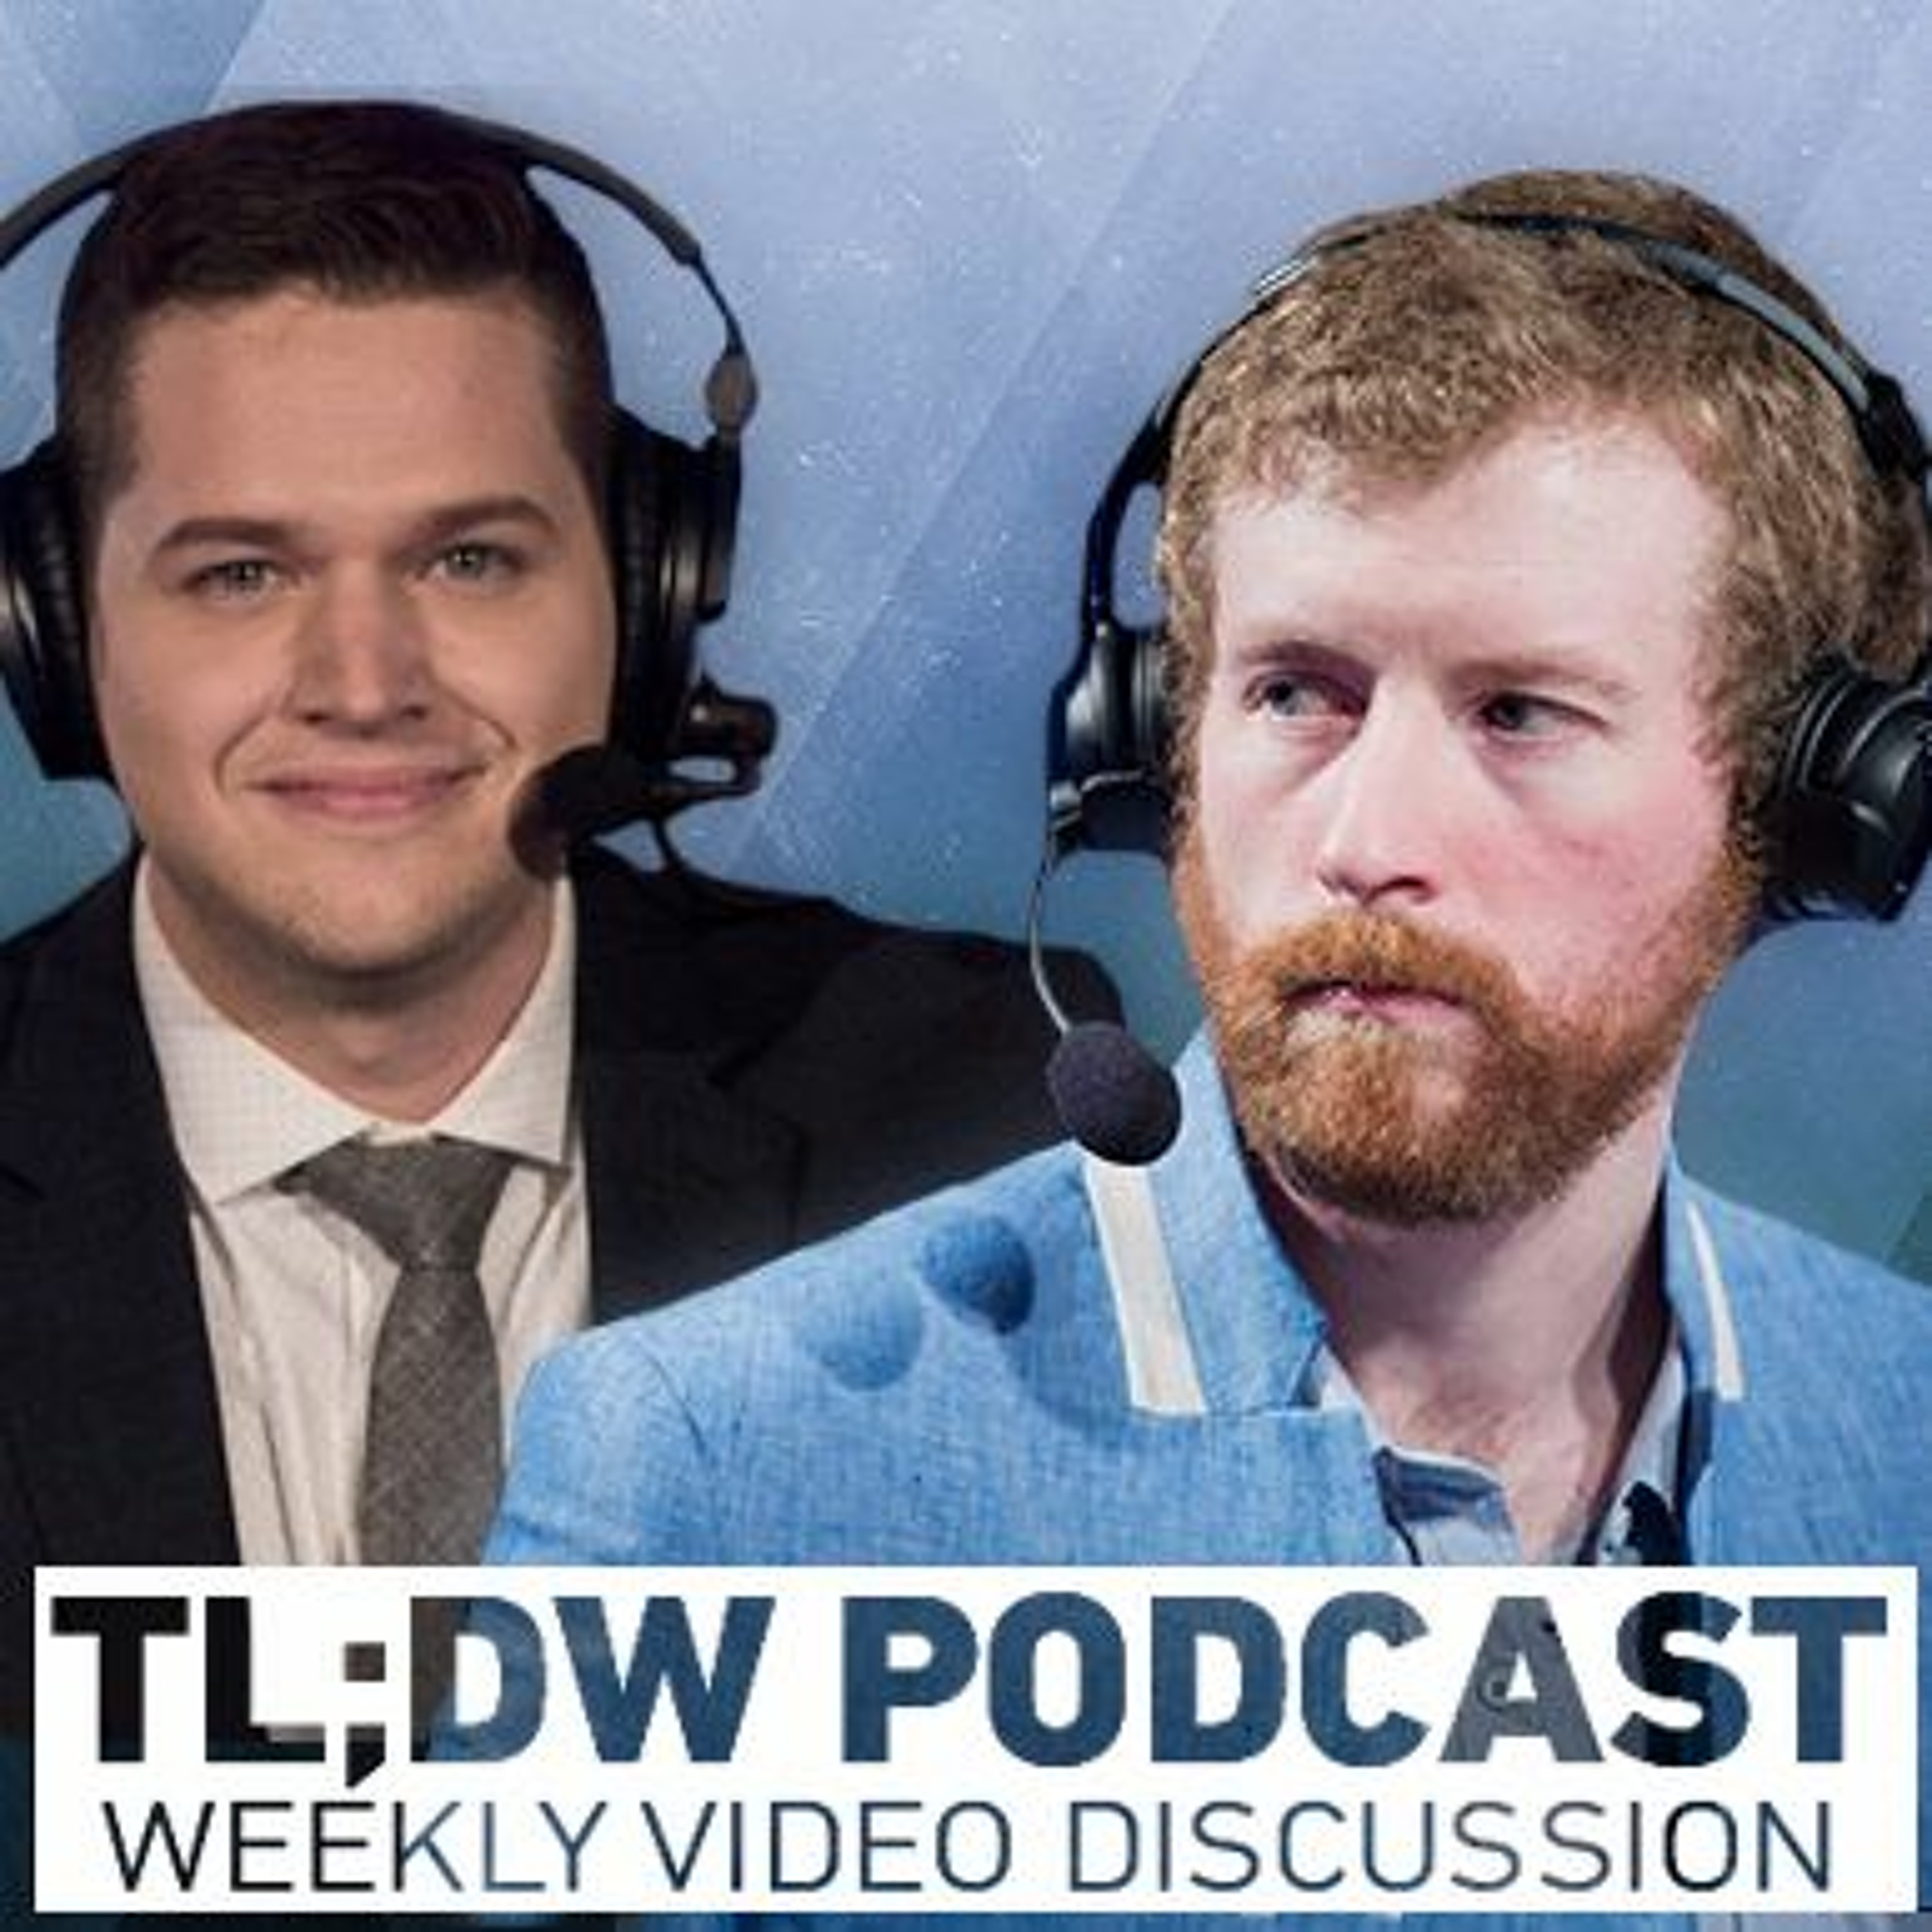 TLDW Podcast #16 - July 25th